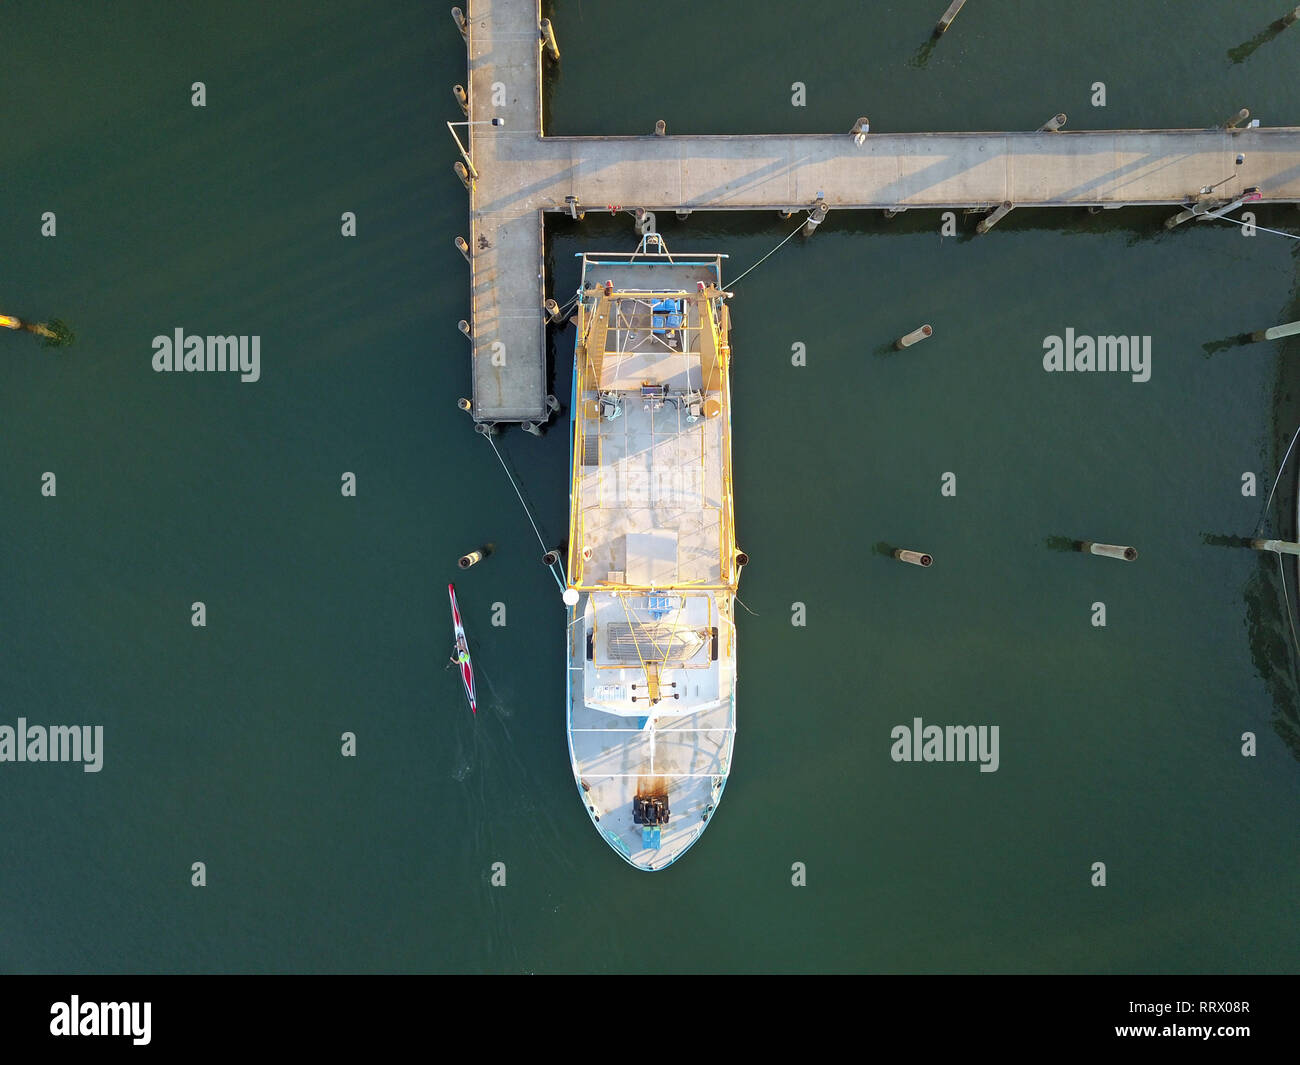 Fishing boat from above with nearby extreme kayaking ocean activity. Captured using aerial photography and remote drone in Queensland, Australia. - Stock Image